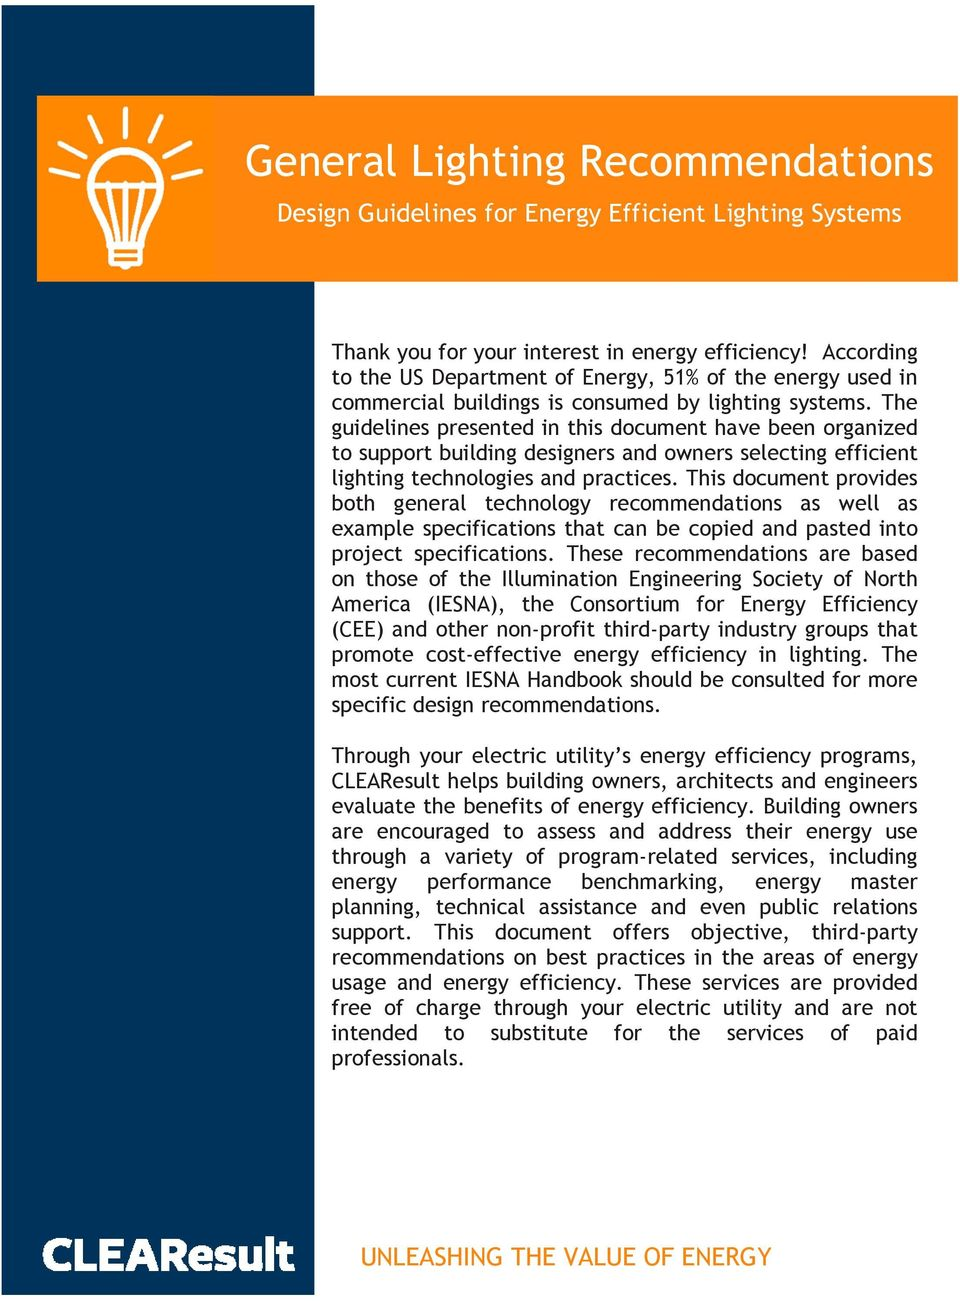 The guidelines presented in this document have been organized to support building designers and owners selecting efficient lighting technologies and practices.